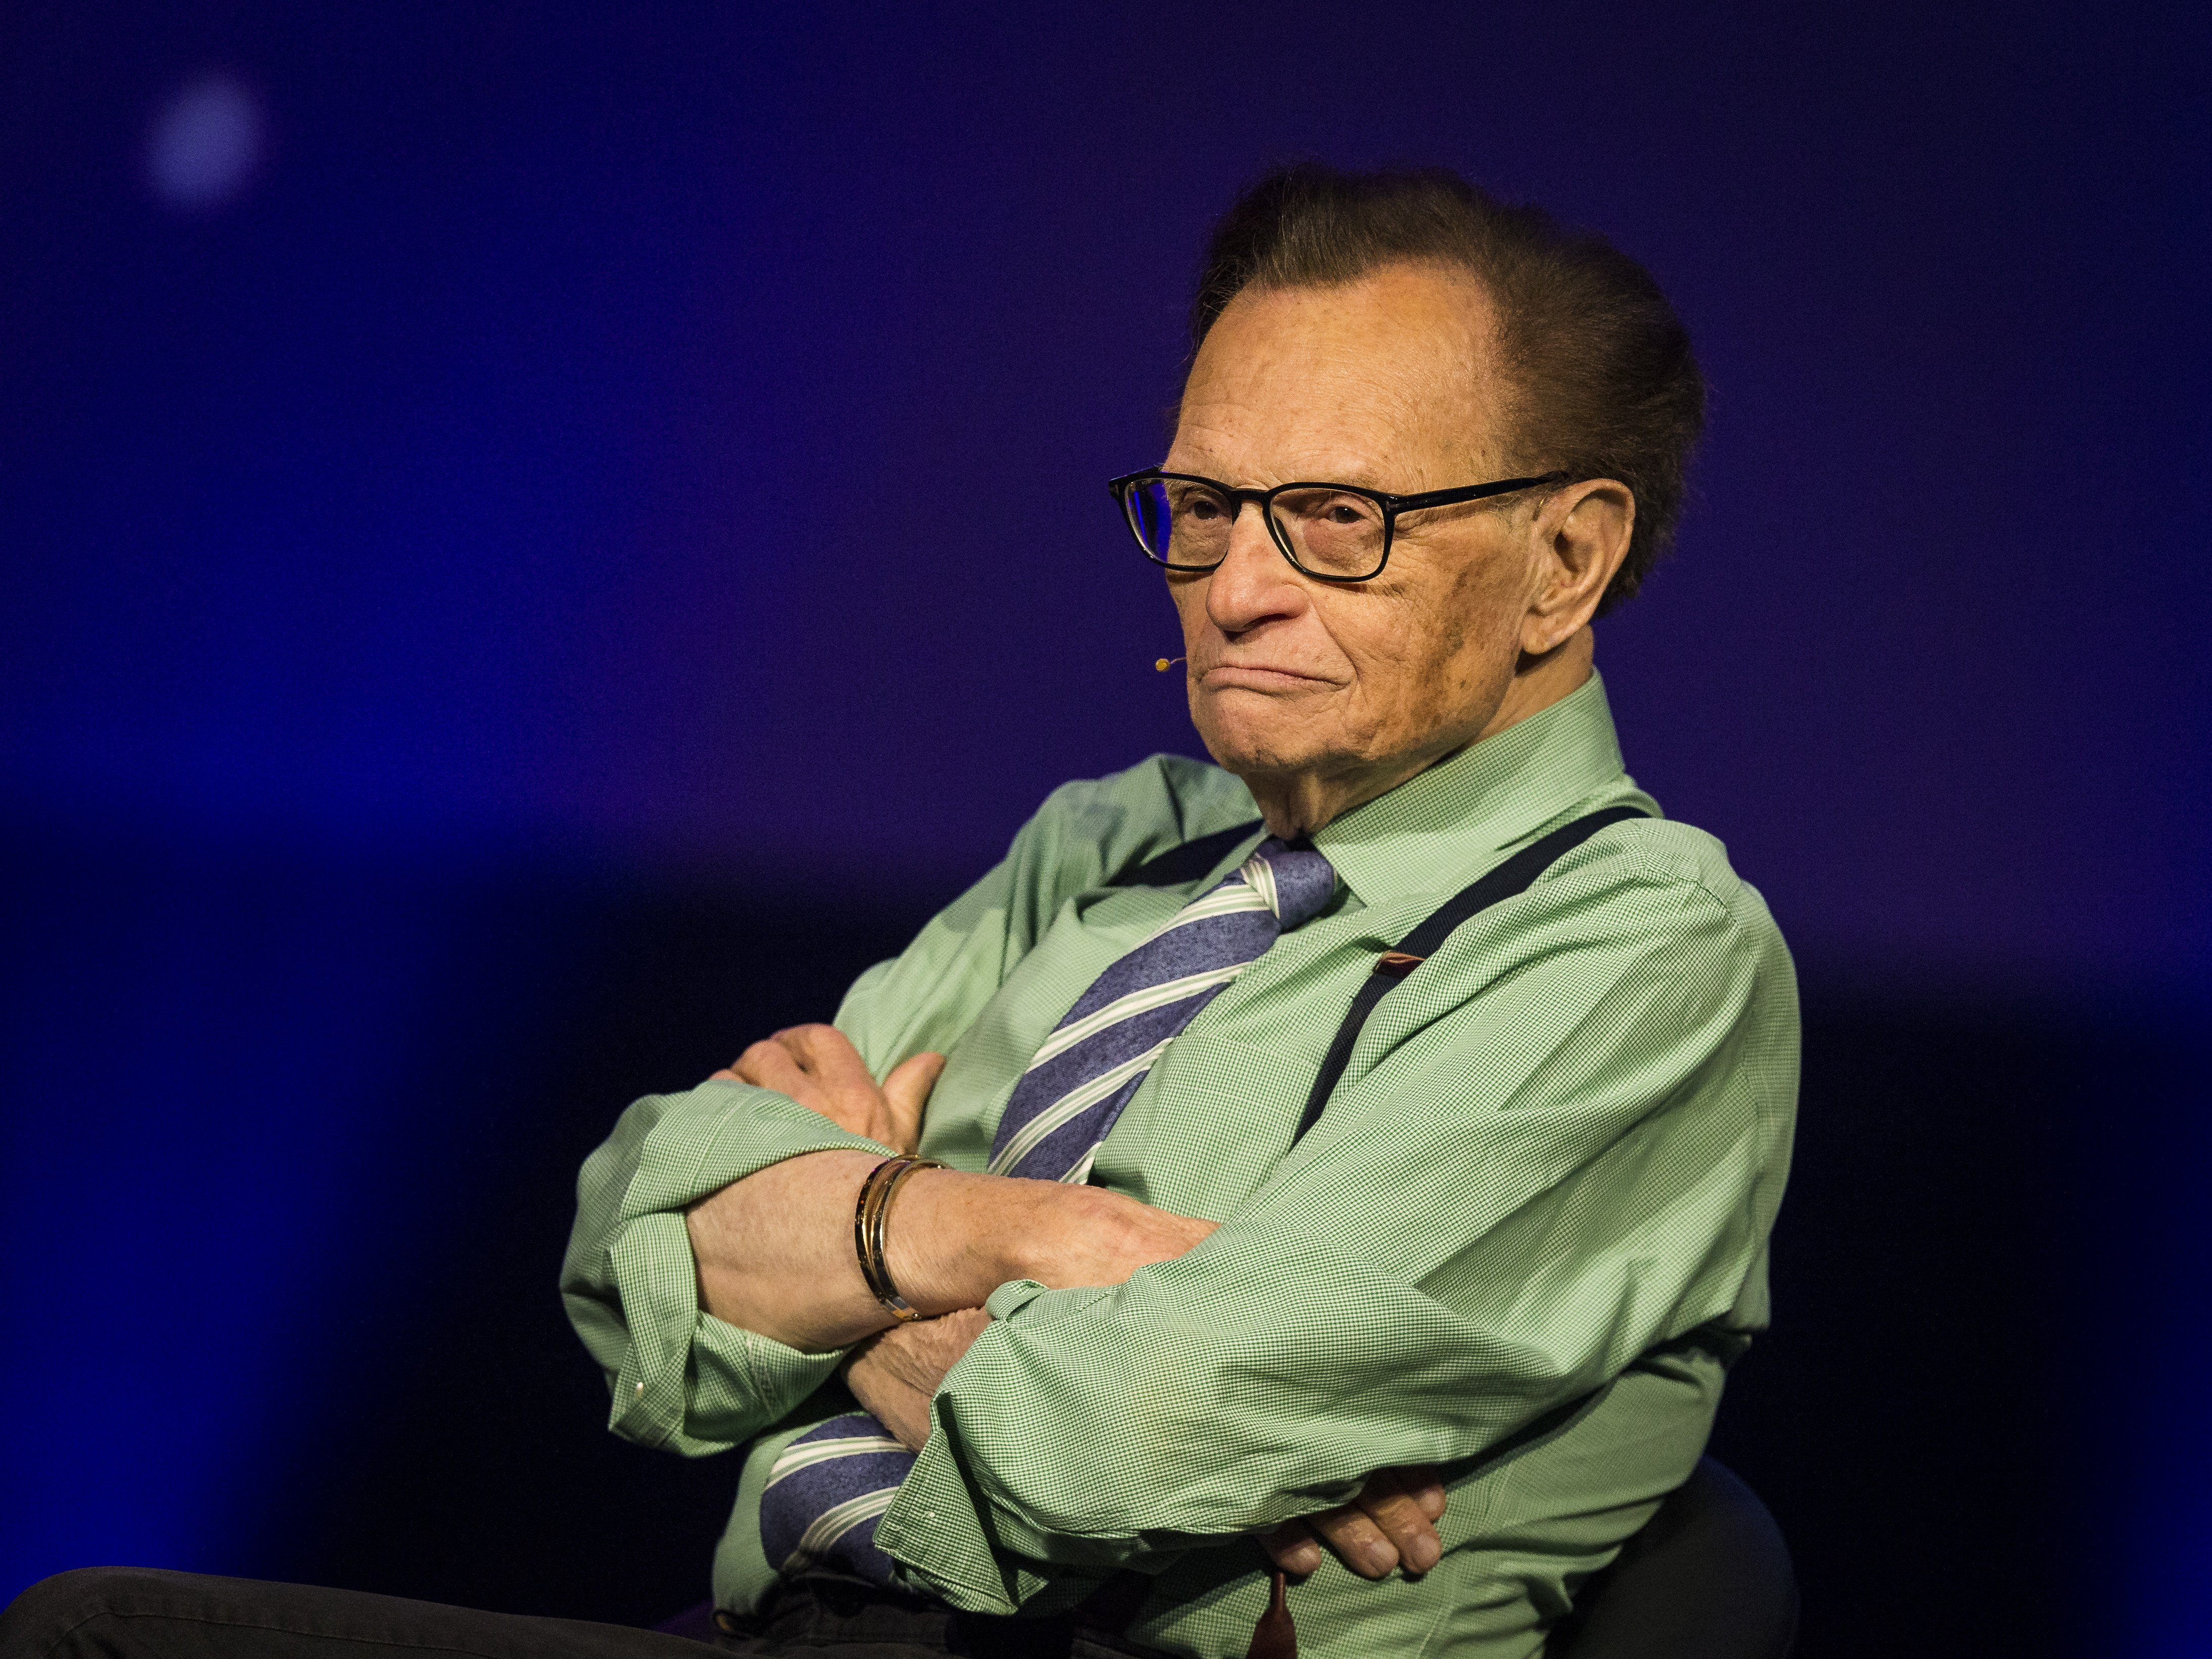 Larry King participates on a discussion on fake news in the media during the Starmus Festival on June 21, 2017, in Trondheim, Norway. | Source: Getty Images.